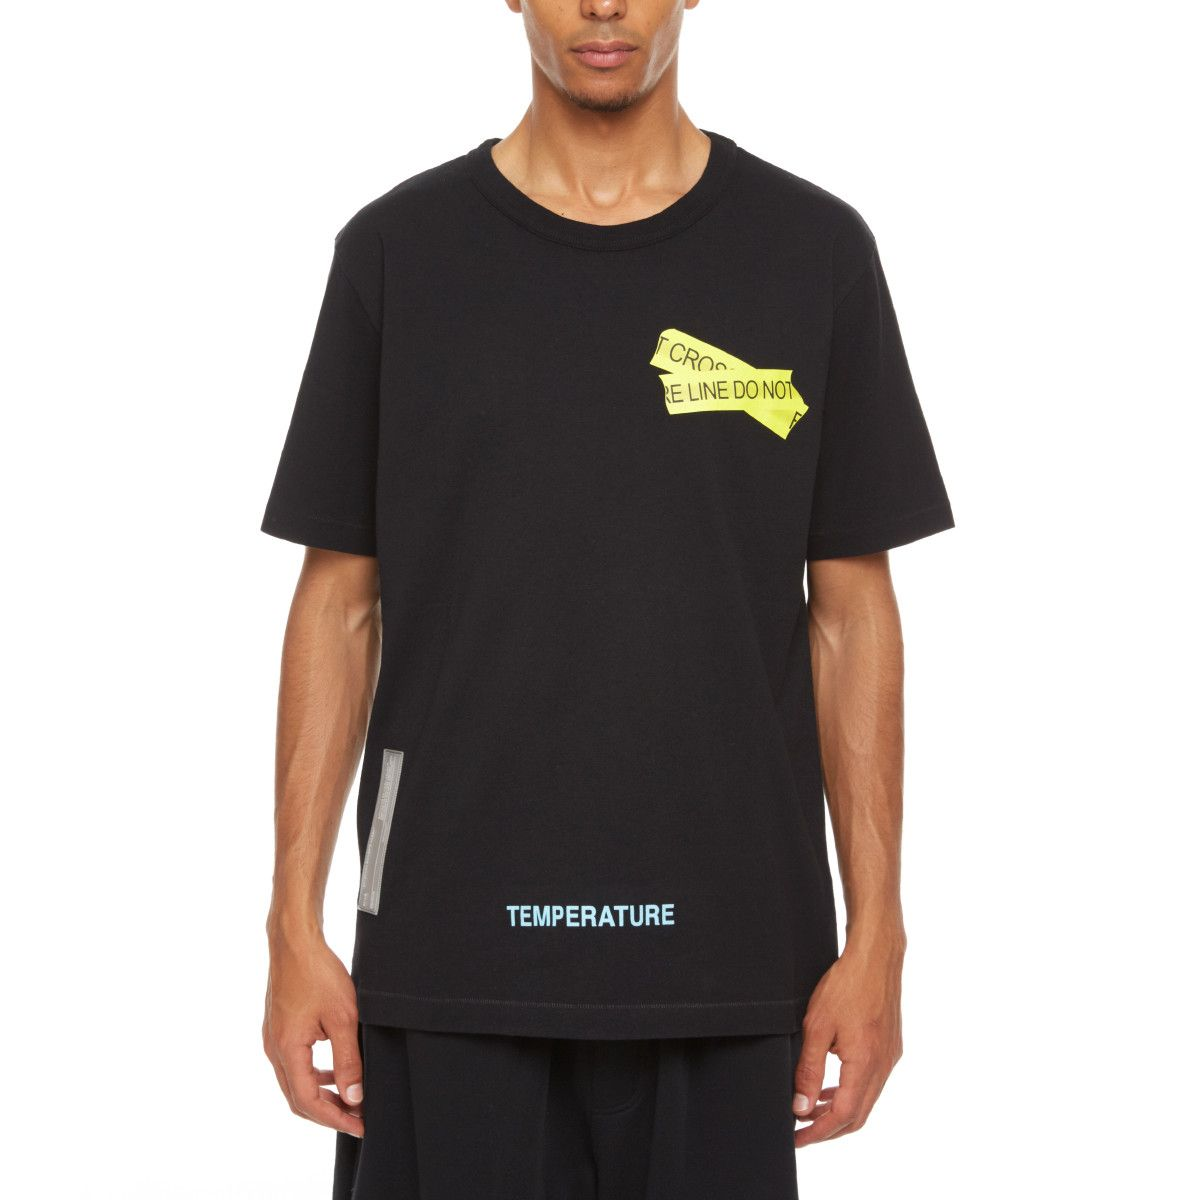 ee3b8f5d Firetape t-shirt from the S/S2018 Off-White c/o Virgil Abloh collection in  black